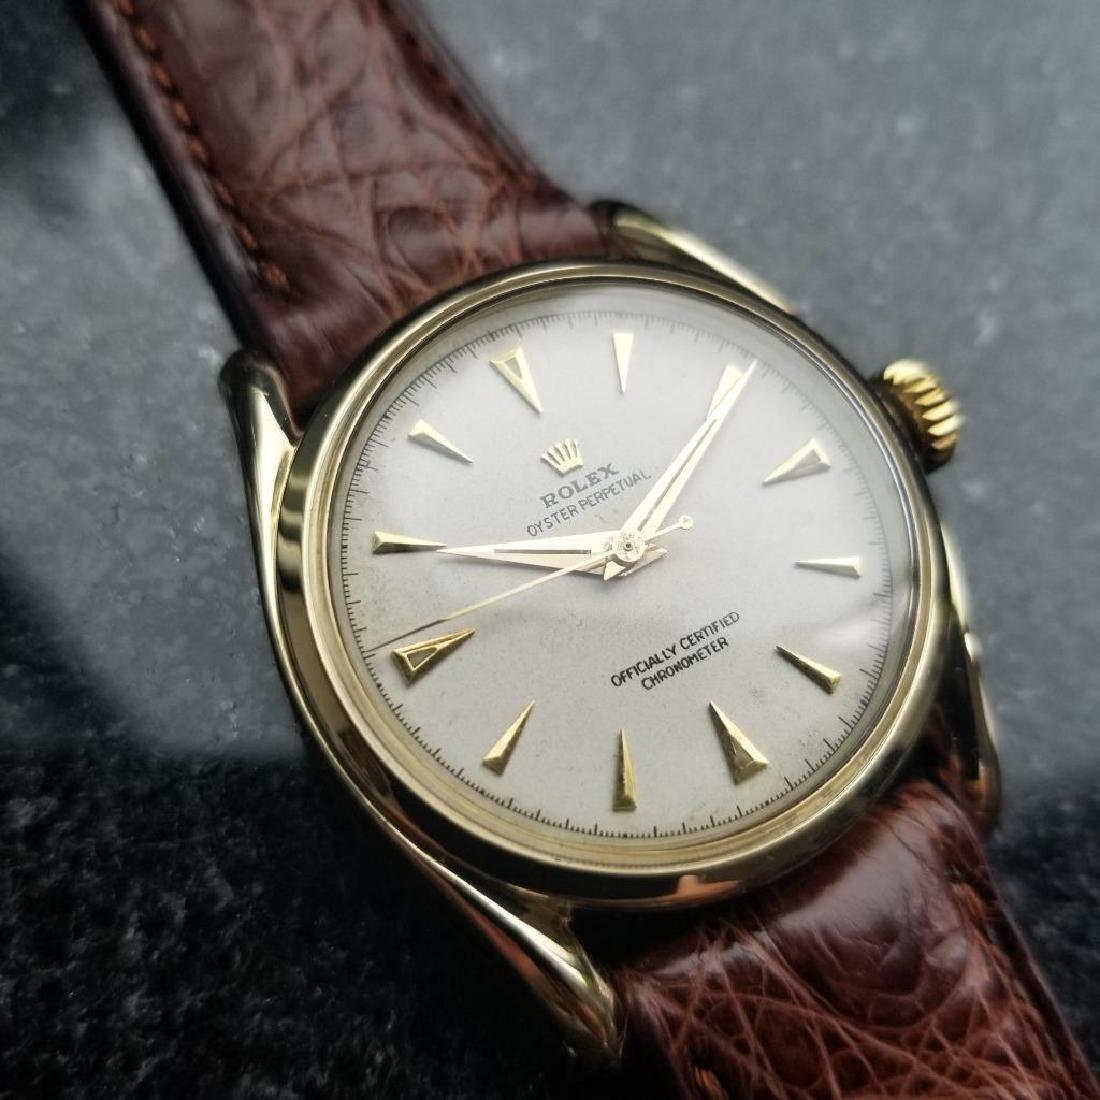 Rolex Oyster Perpetual Vintage 1951 14k Gold 6092 - 3